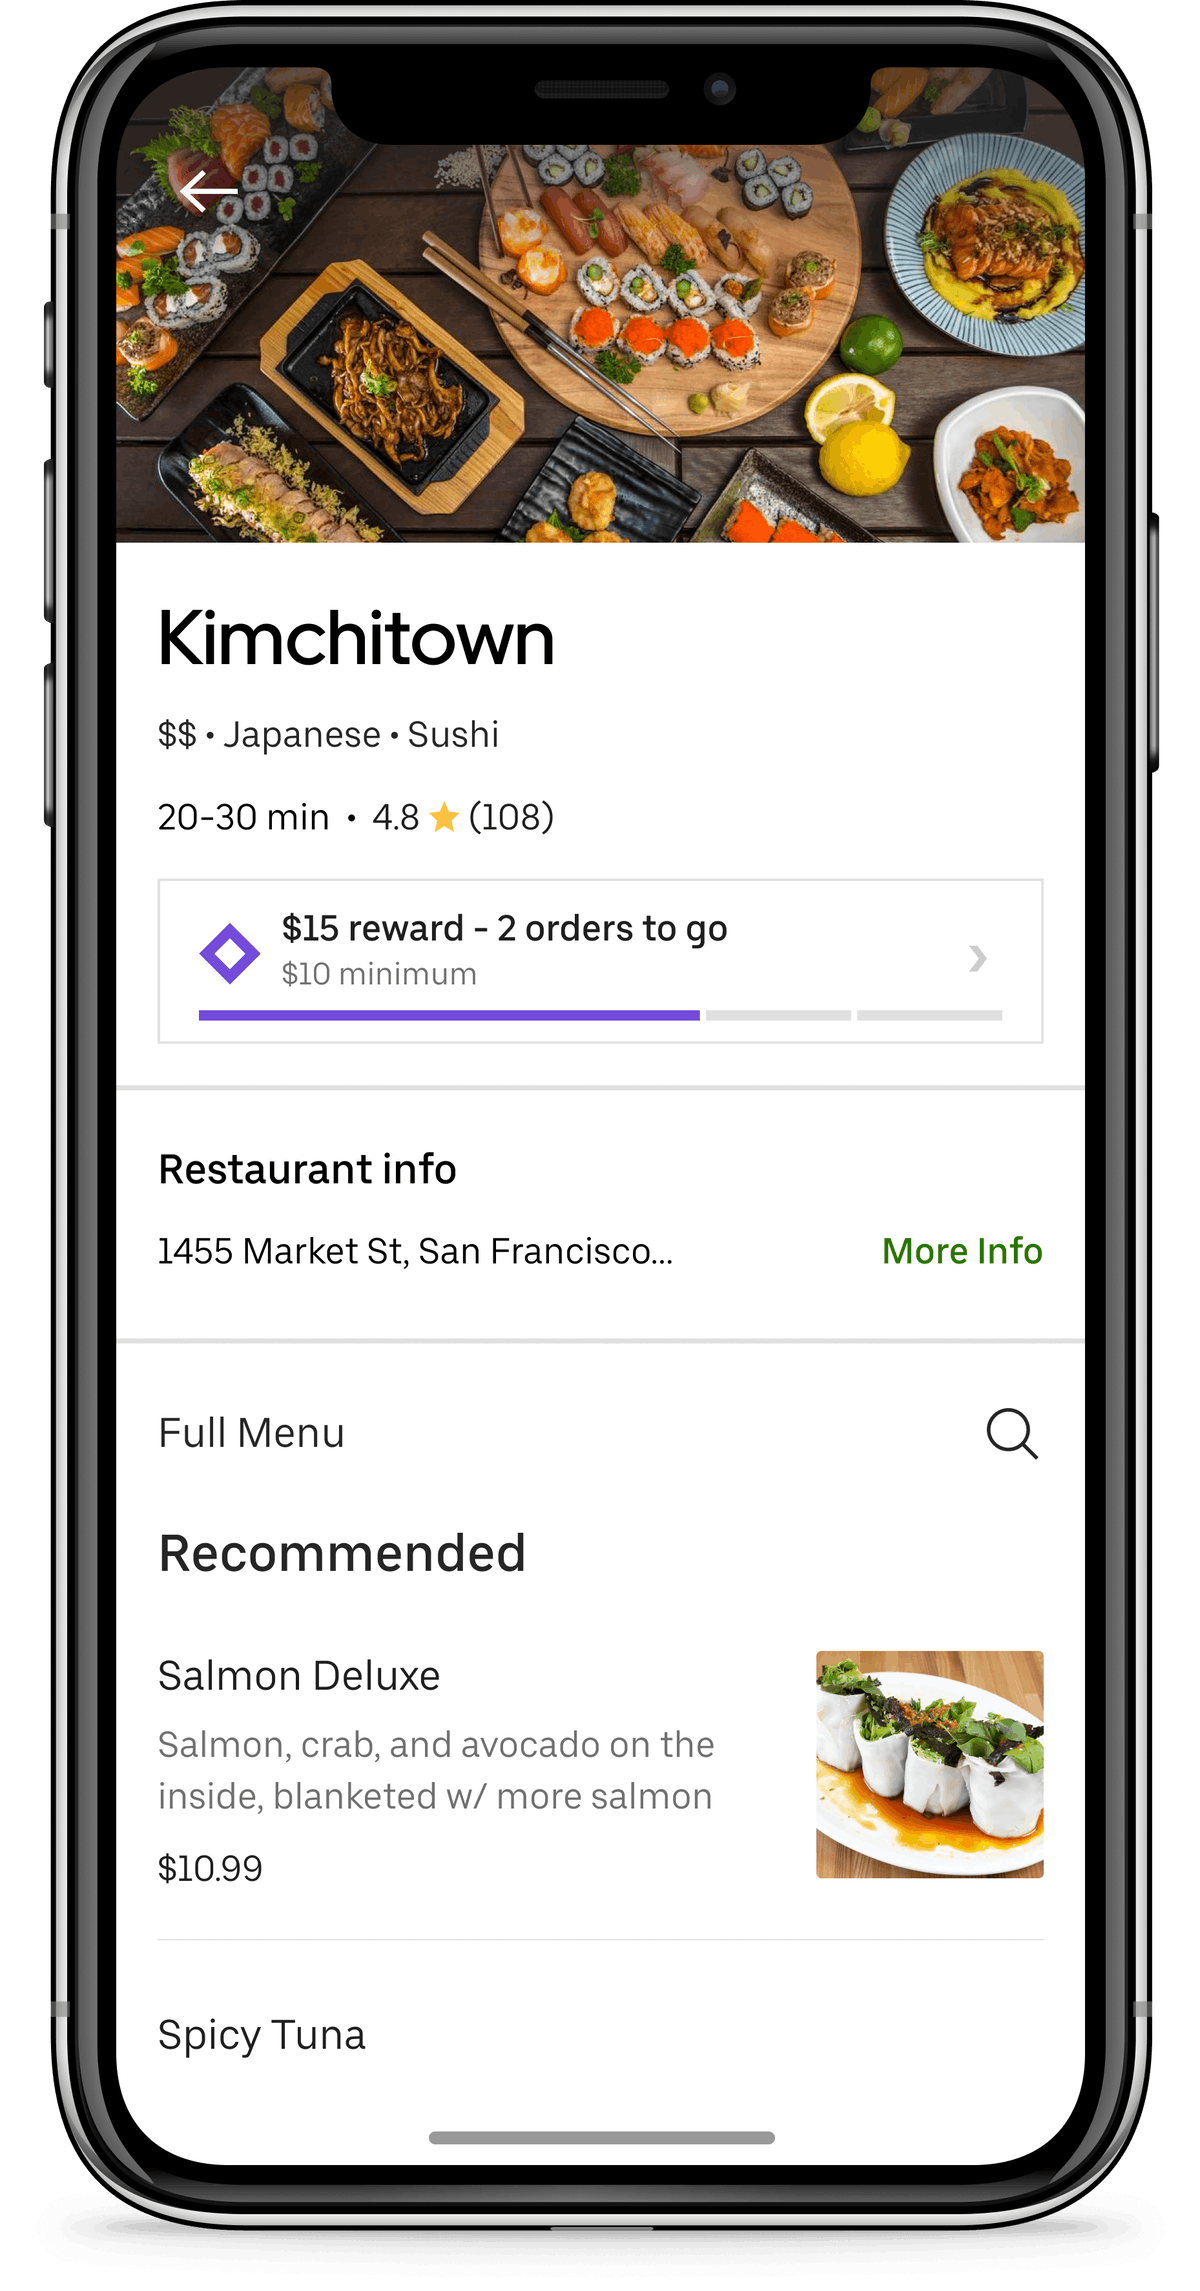 You can see your rewards progress at specific restaurants in the app.